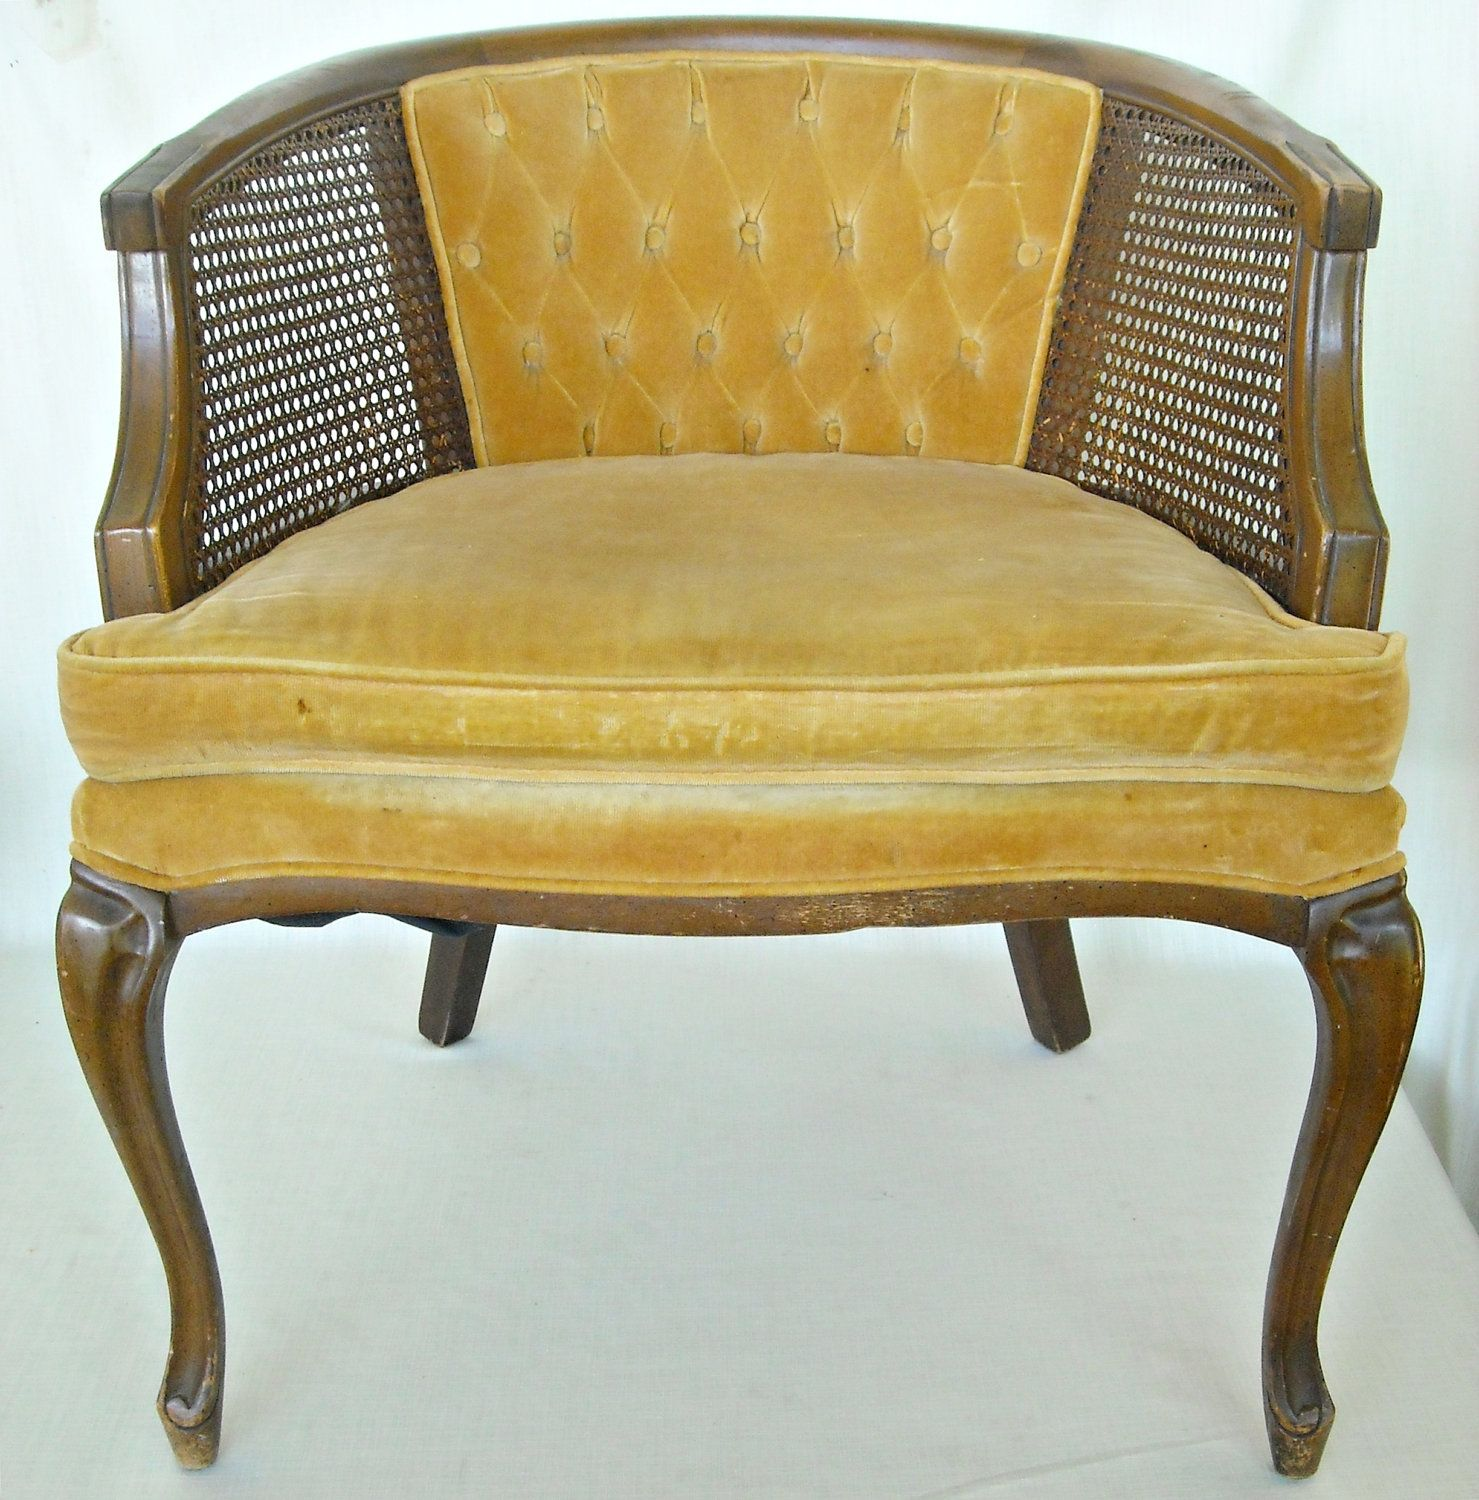 Mid Century French Cane Chair Barrel Back Hollywood Regency 75 00 Via Etsy Chair Cane Back Chairs Barrel Chair